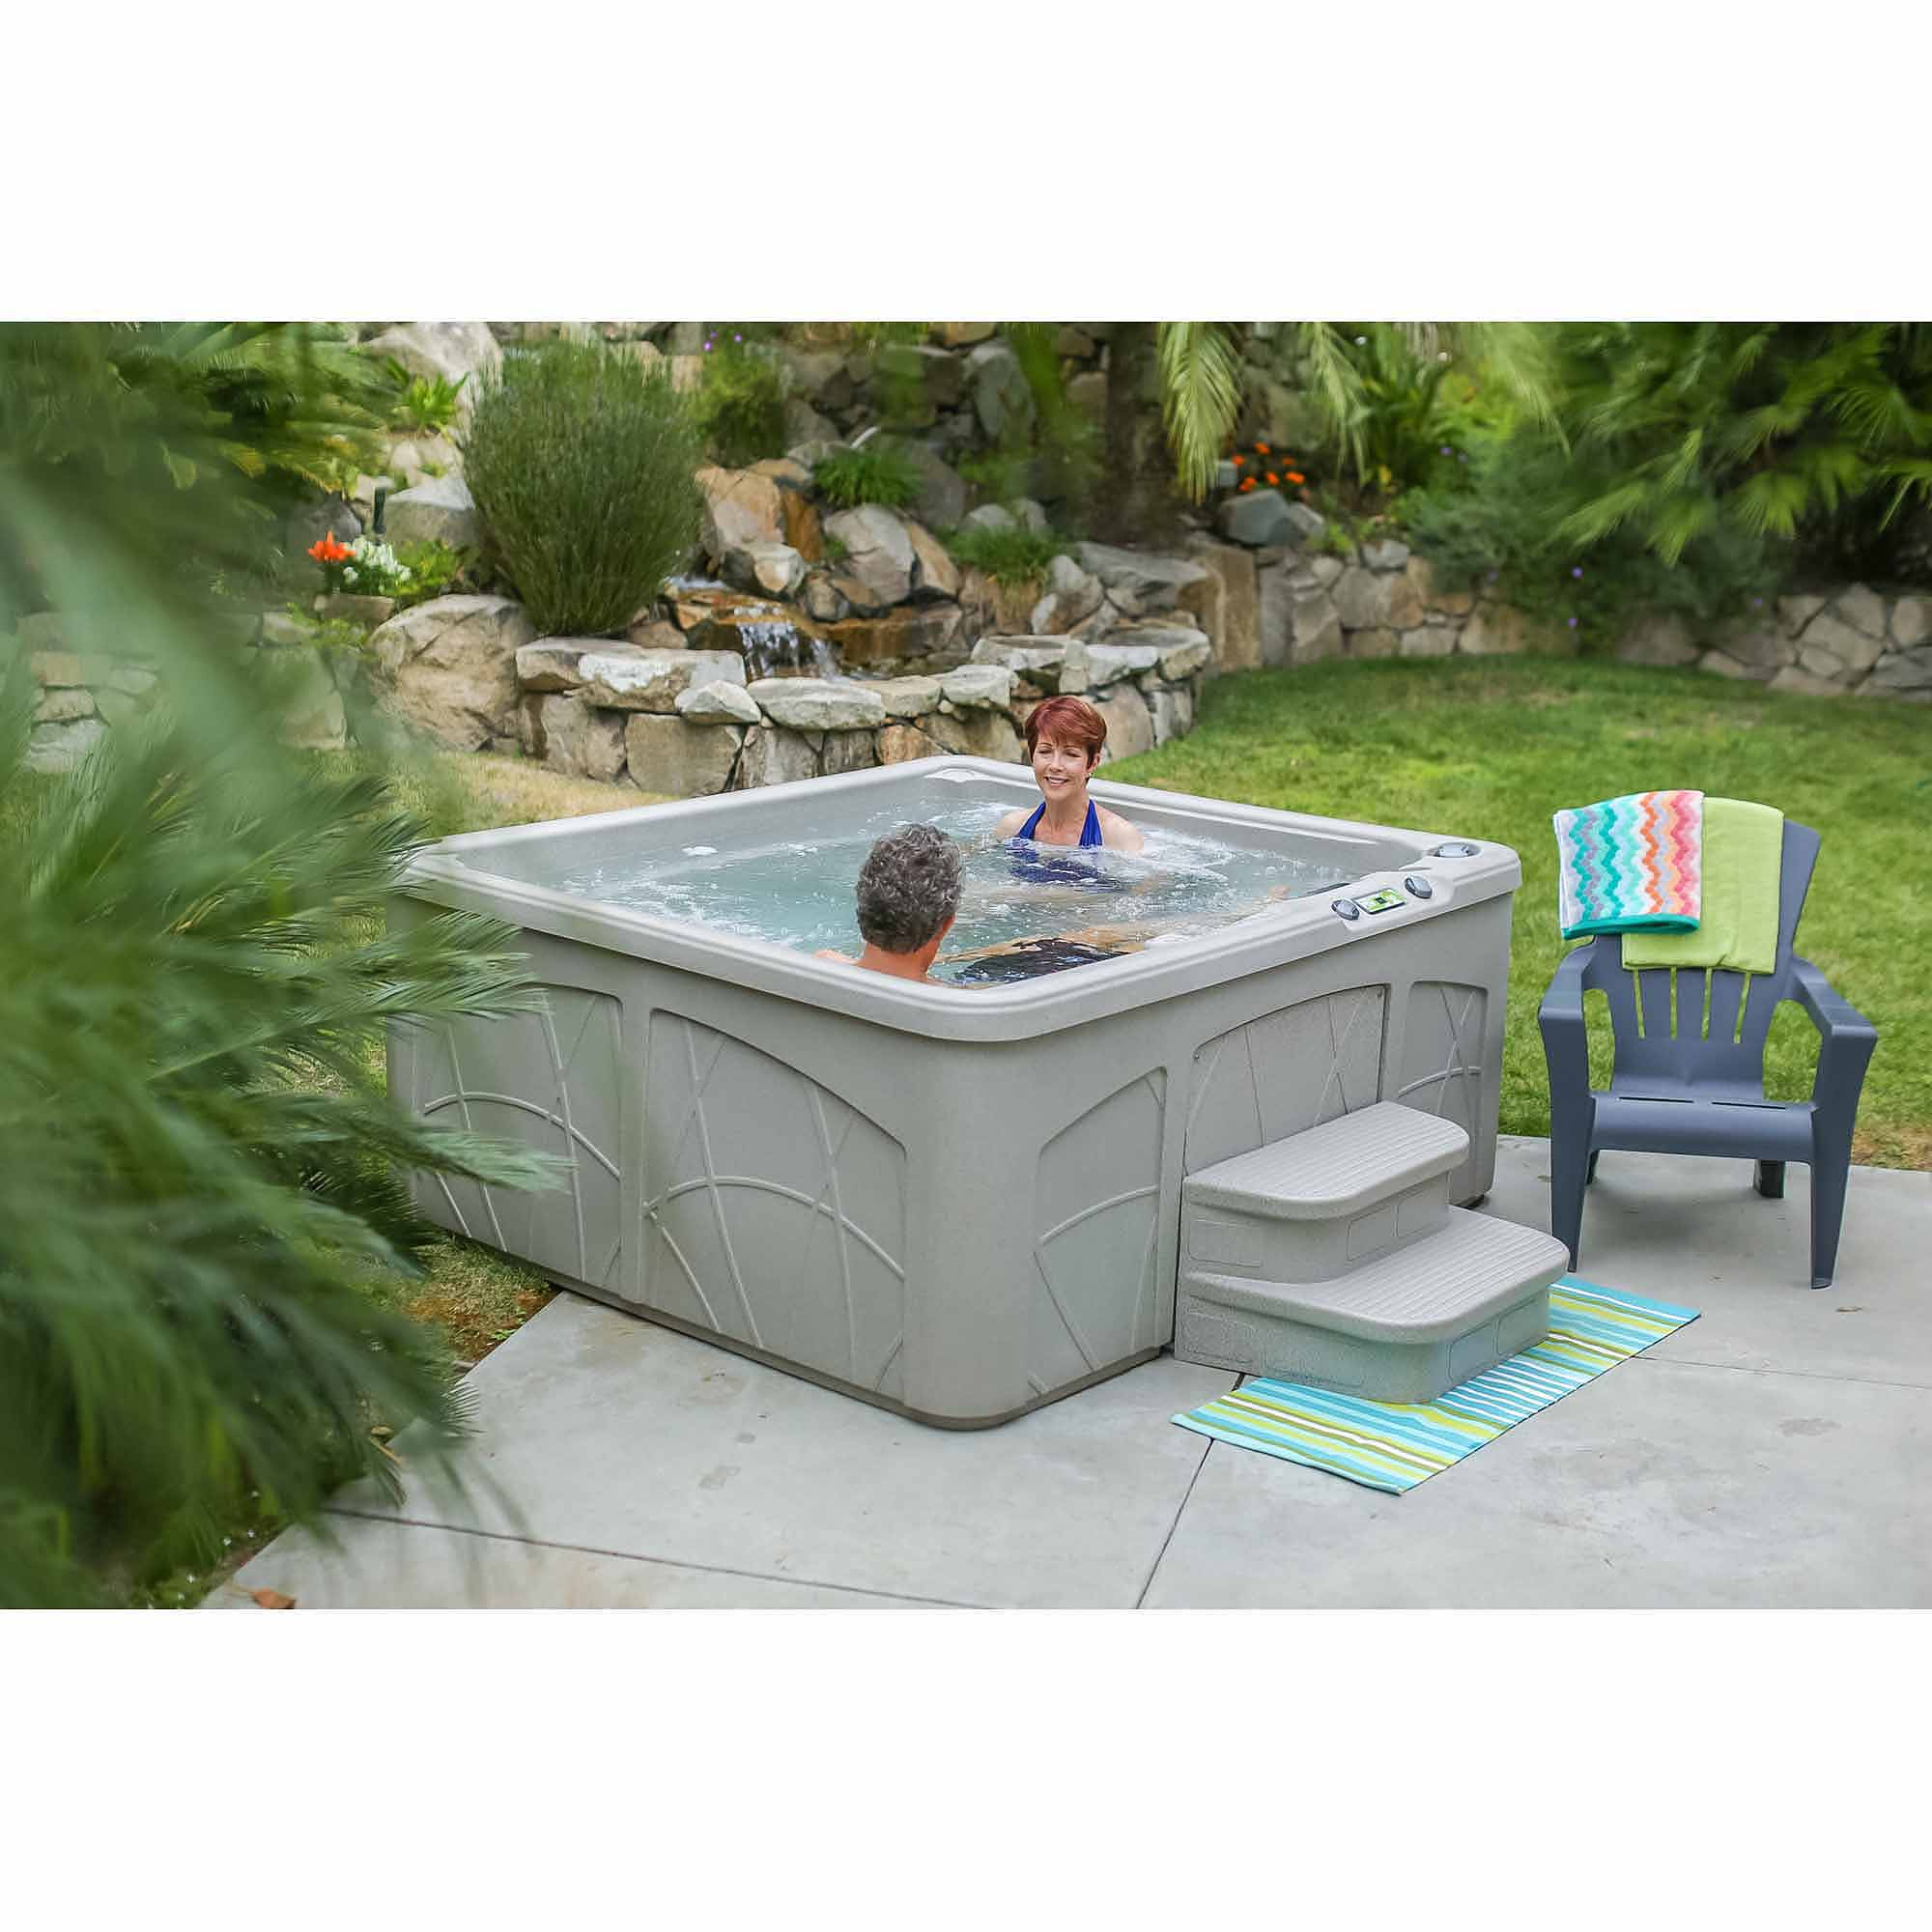 LifeSmart Lifelux 5-Person Plug n Play Spa